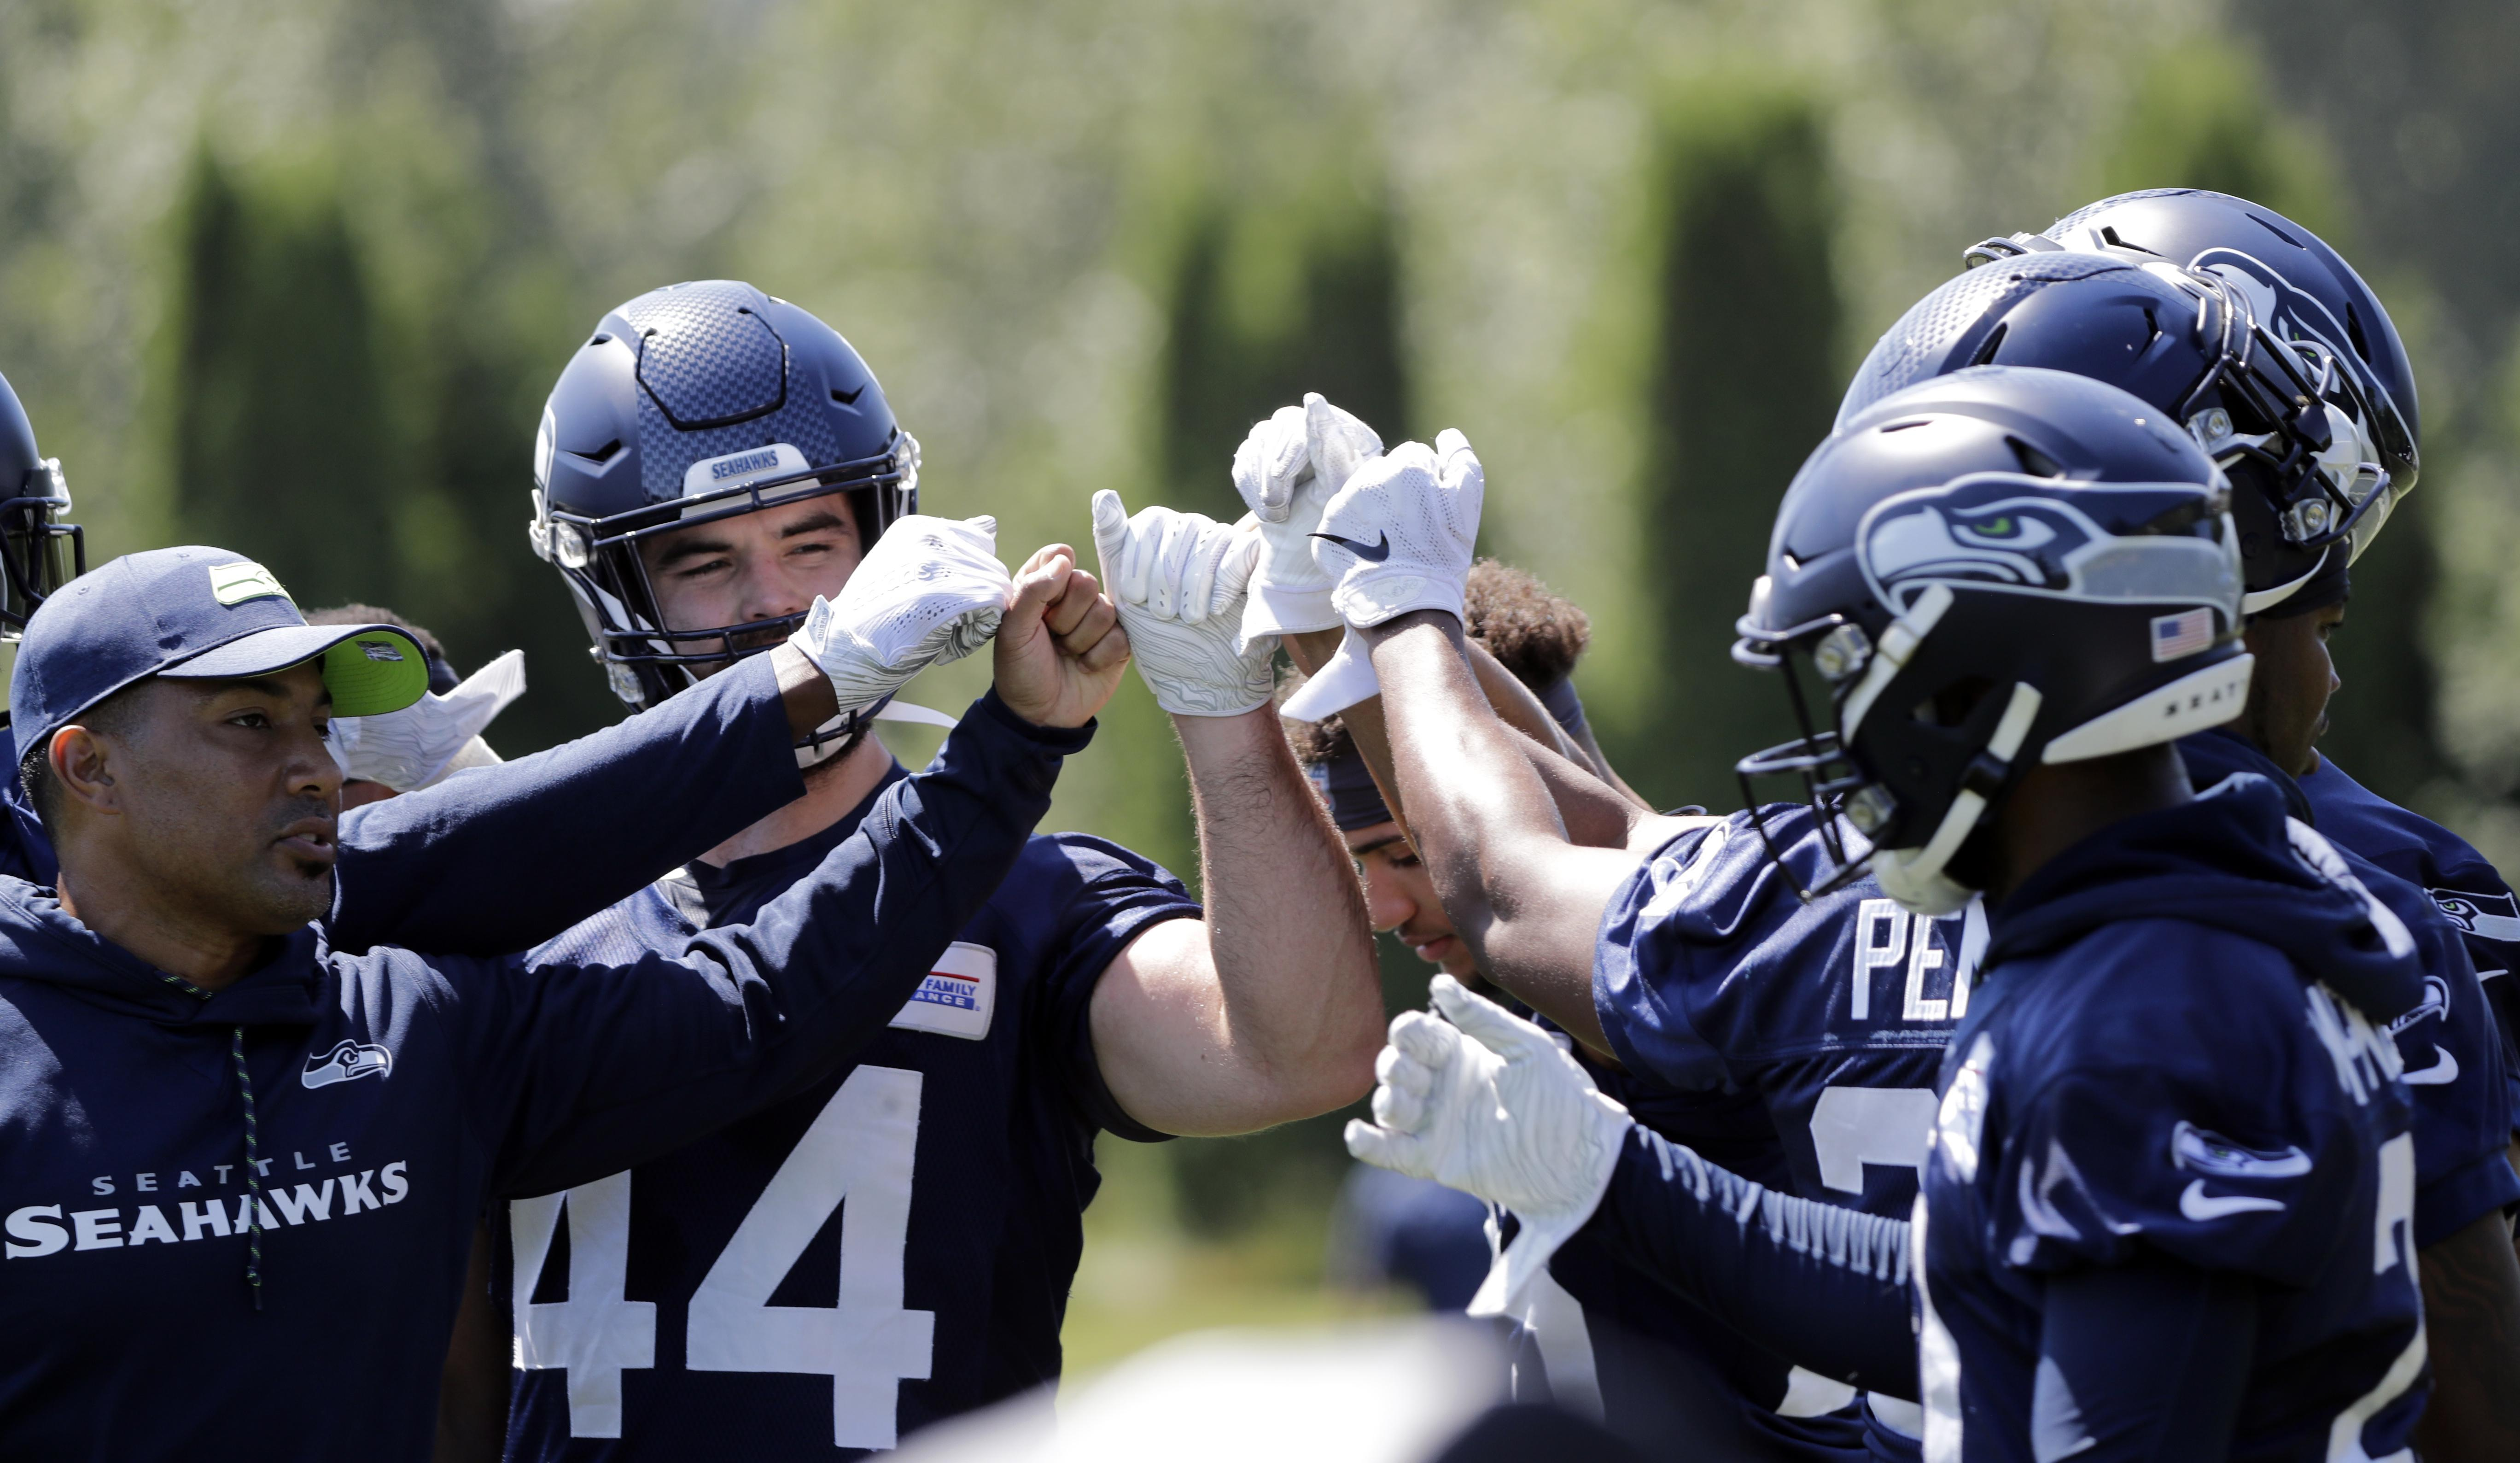 Larry Stone: Seahawks wrap up minicamp happy as clams, with